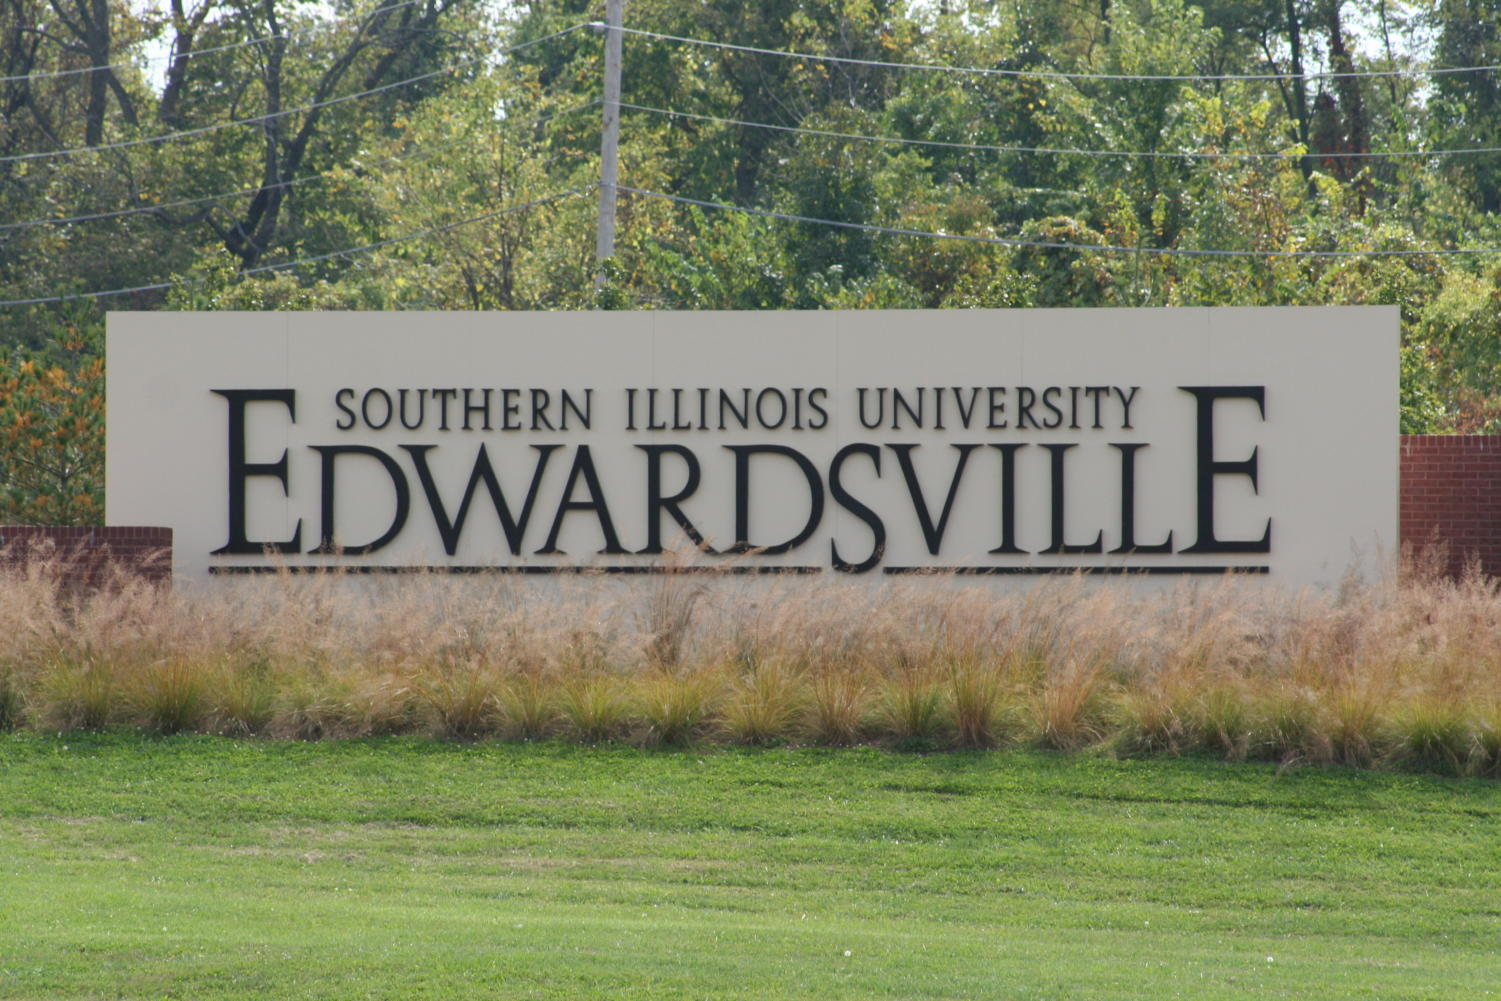 Southern Illinois University Edwardsvillle entry sign